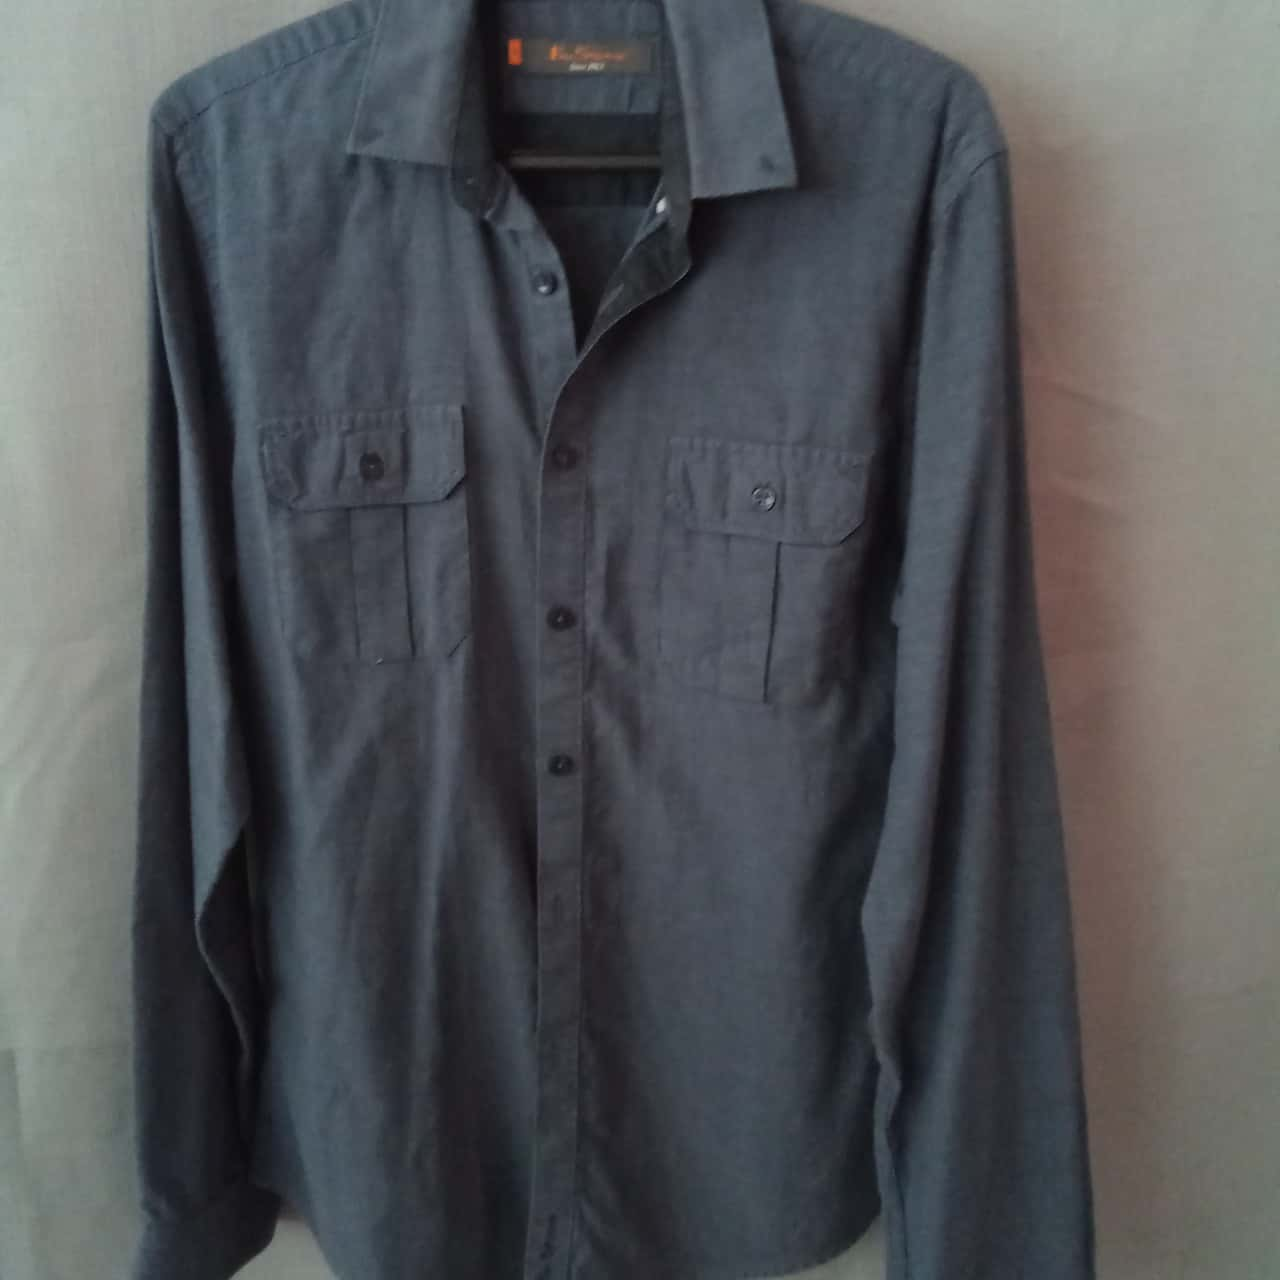 REDUCED WAS $12 NOW $5 Ben Sherman Mens Blue Small Grid Shirt Size M